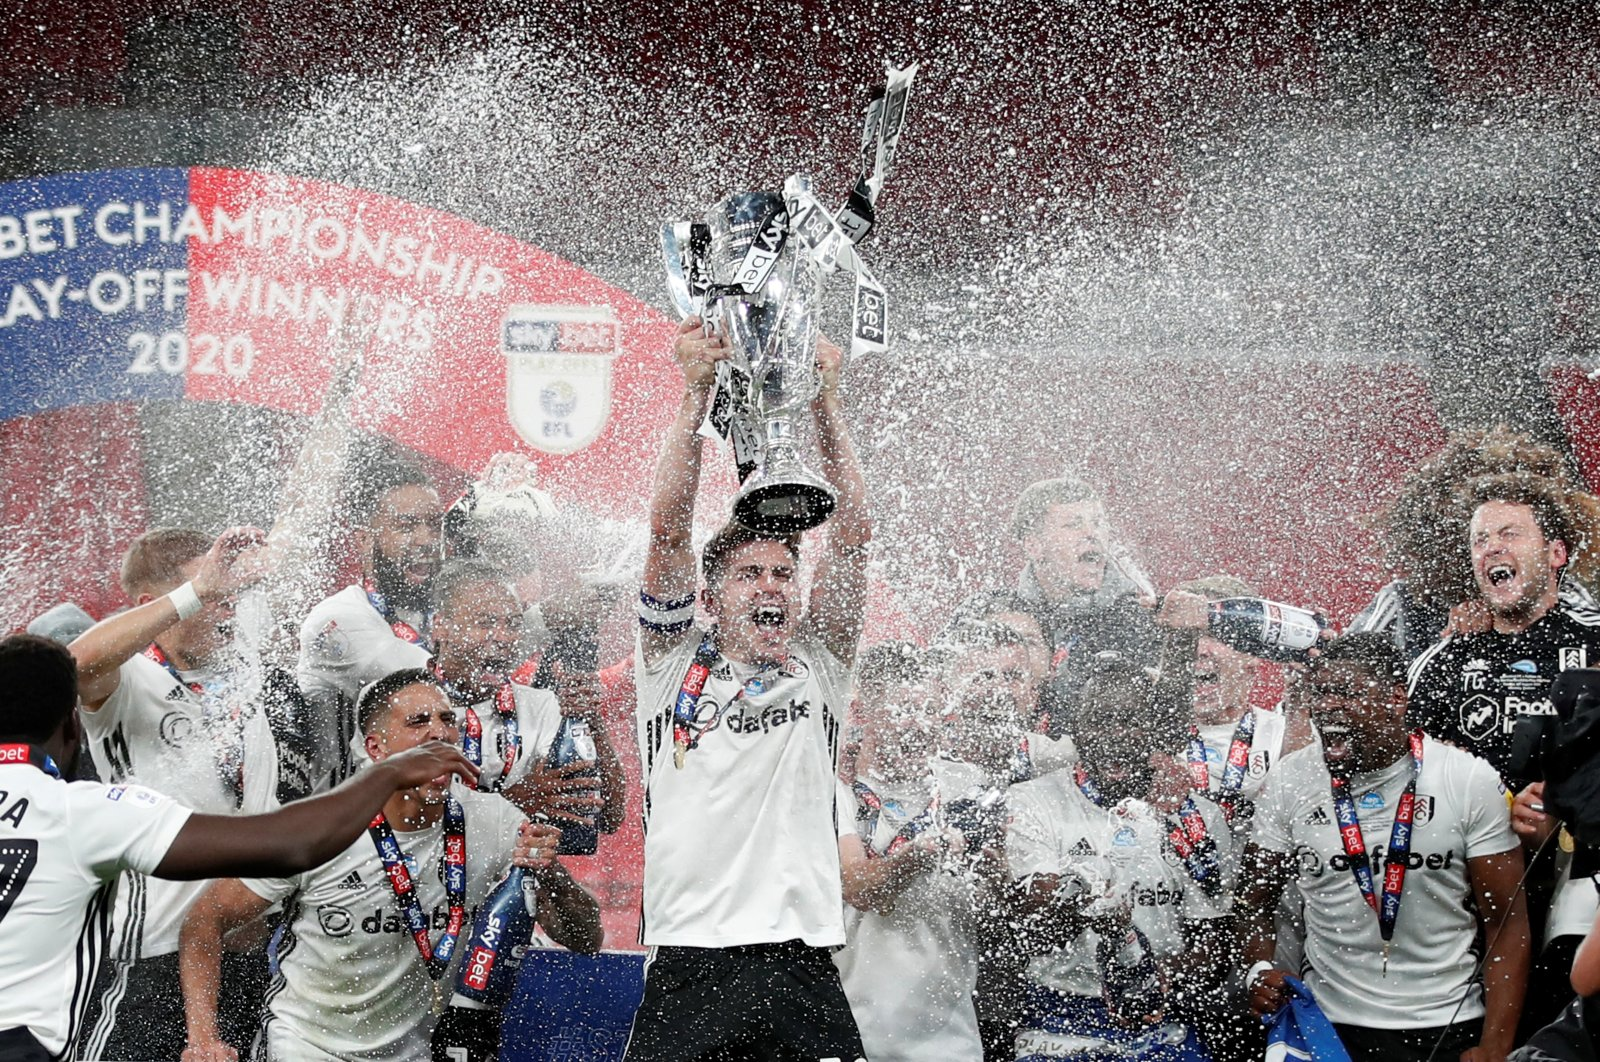 Fulham's Tom Cairney lifts EFL Championship trophy as he celebrates promotion to the Premier League with teammates after winning the playoff match against Bentford in London, Britain, Aug. 4, 2020. (Reuters Photo)